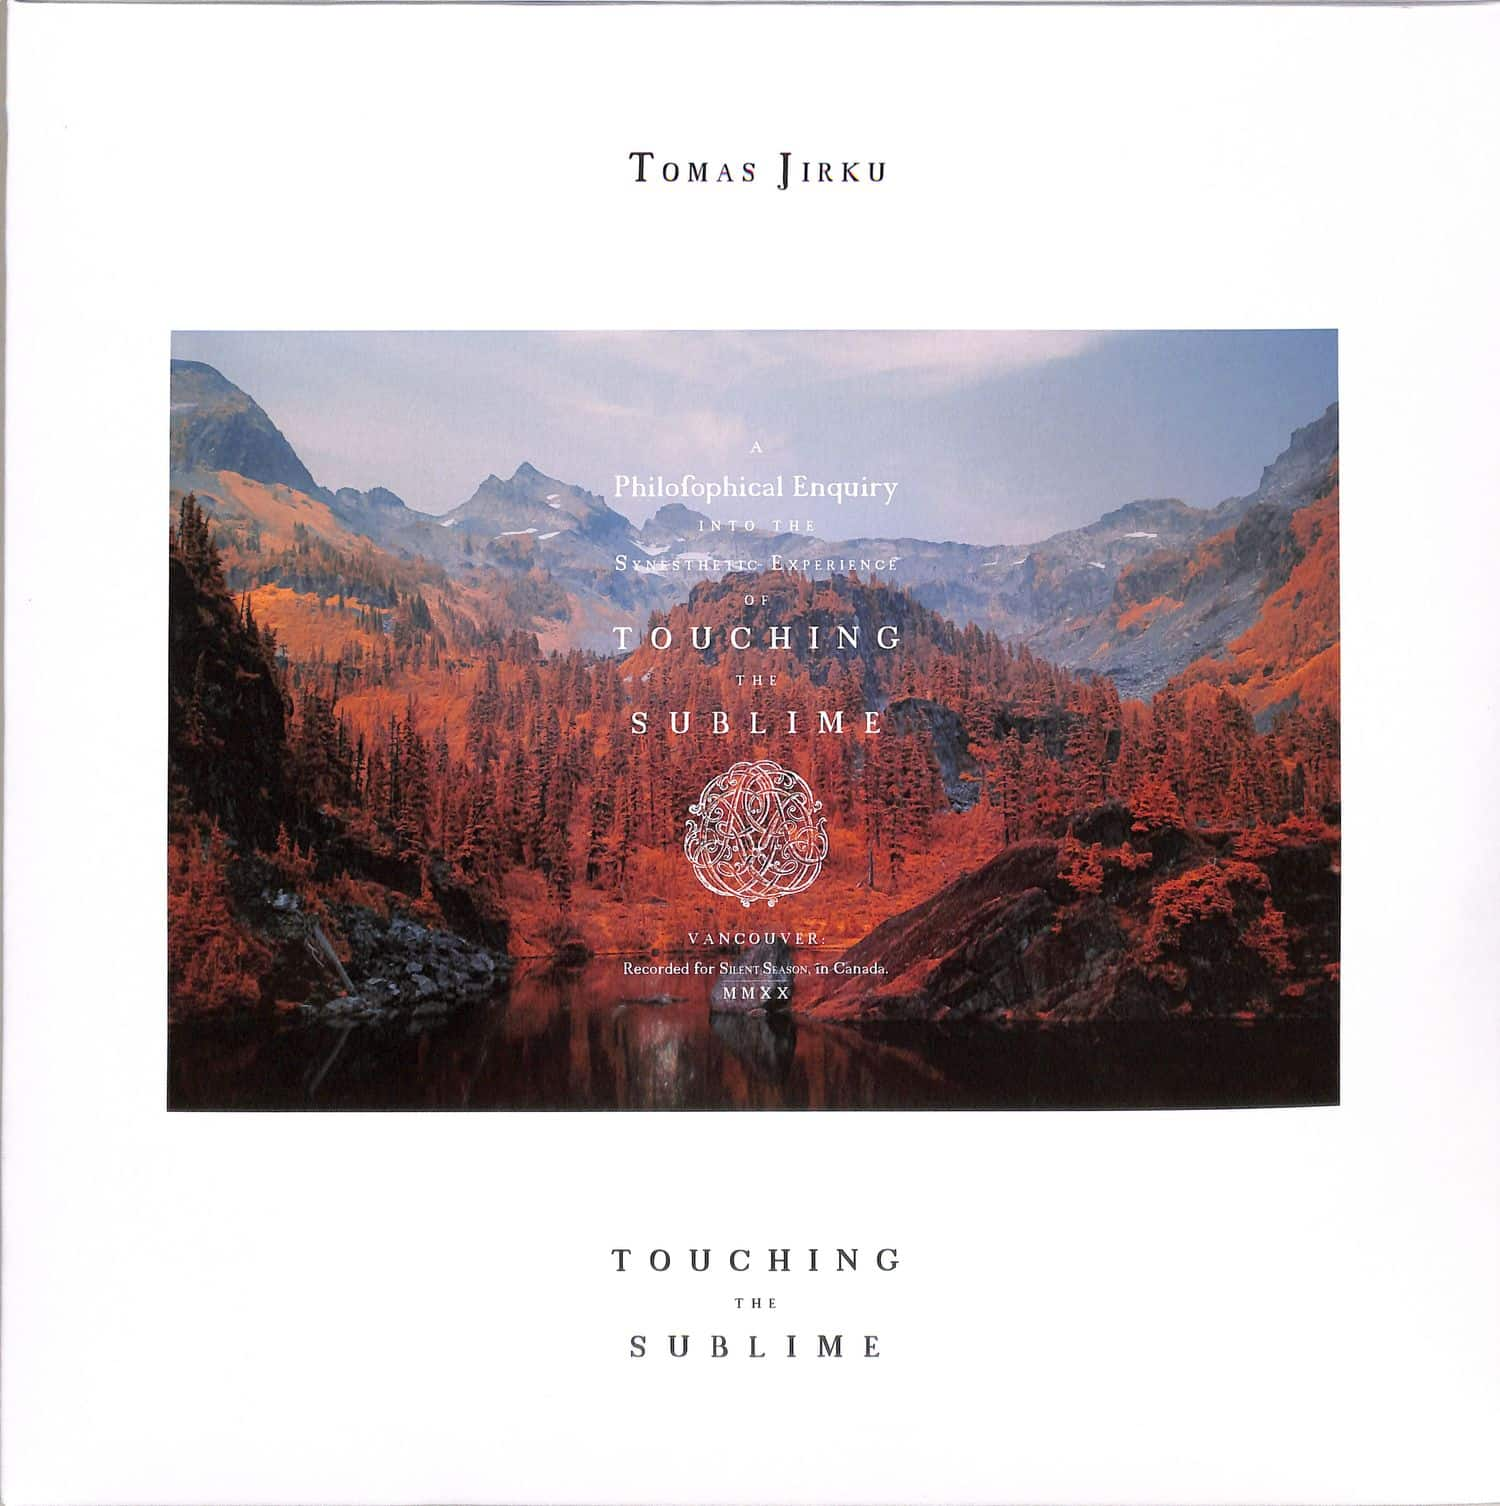 Tomas Jirku - TOUCHING THE SUBLIME